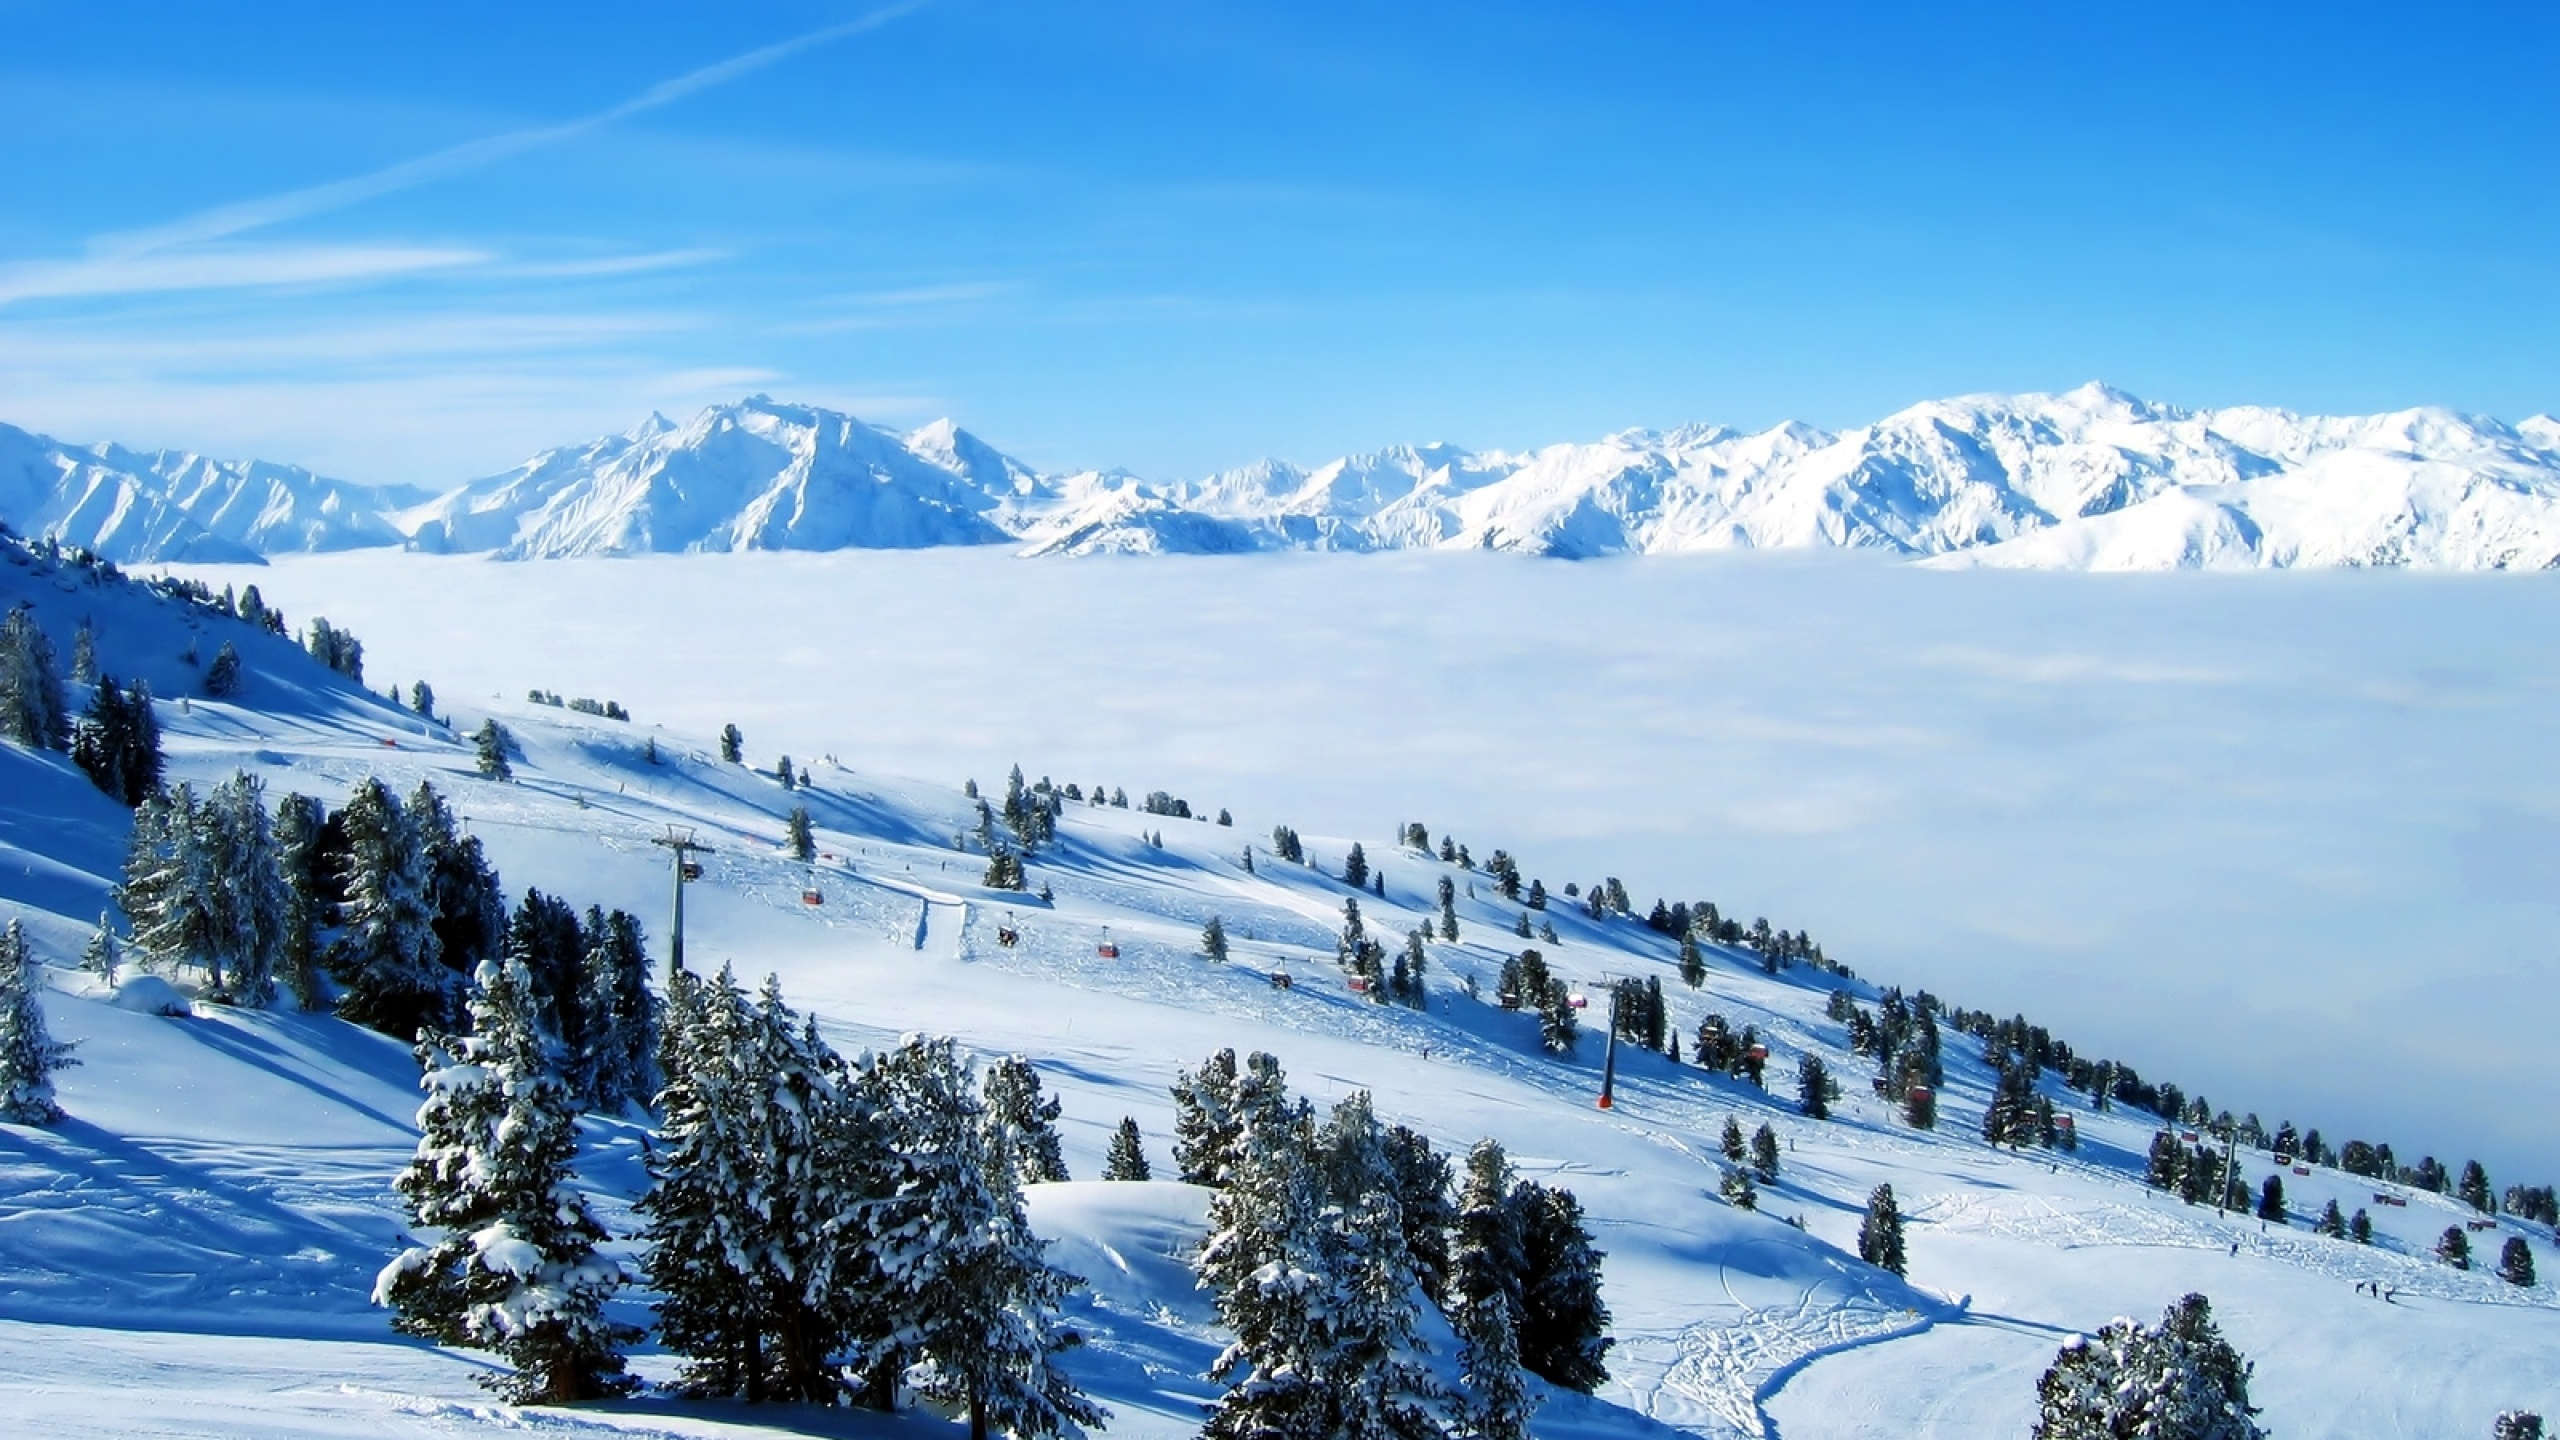 2560x1440 Mountains Snow Trees & Ski desktop PC and Mac ...